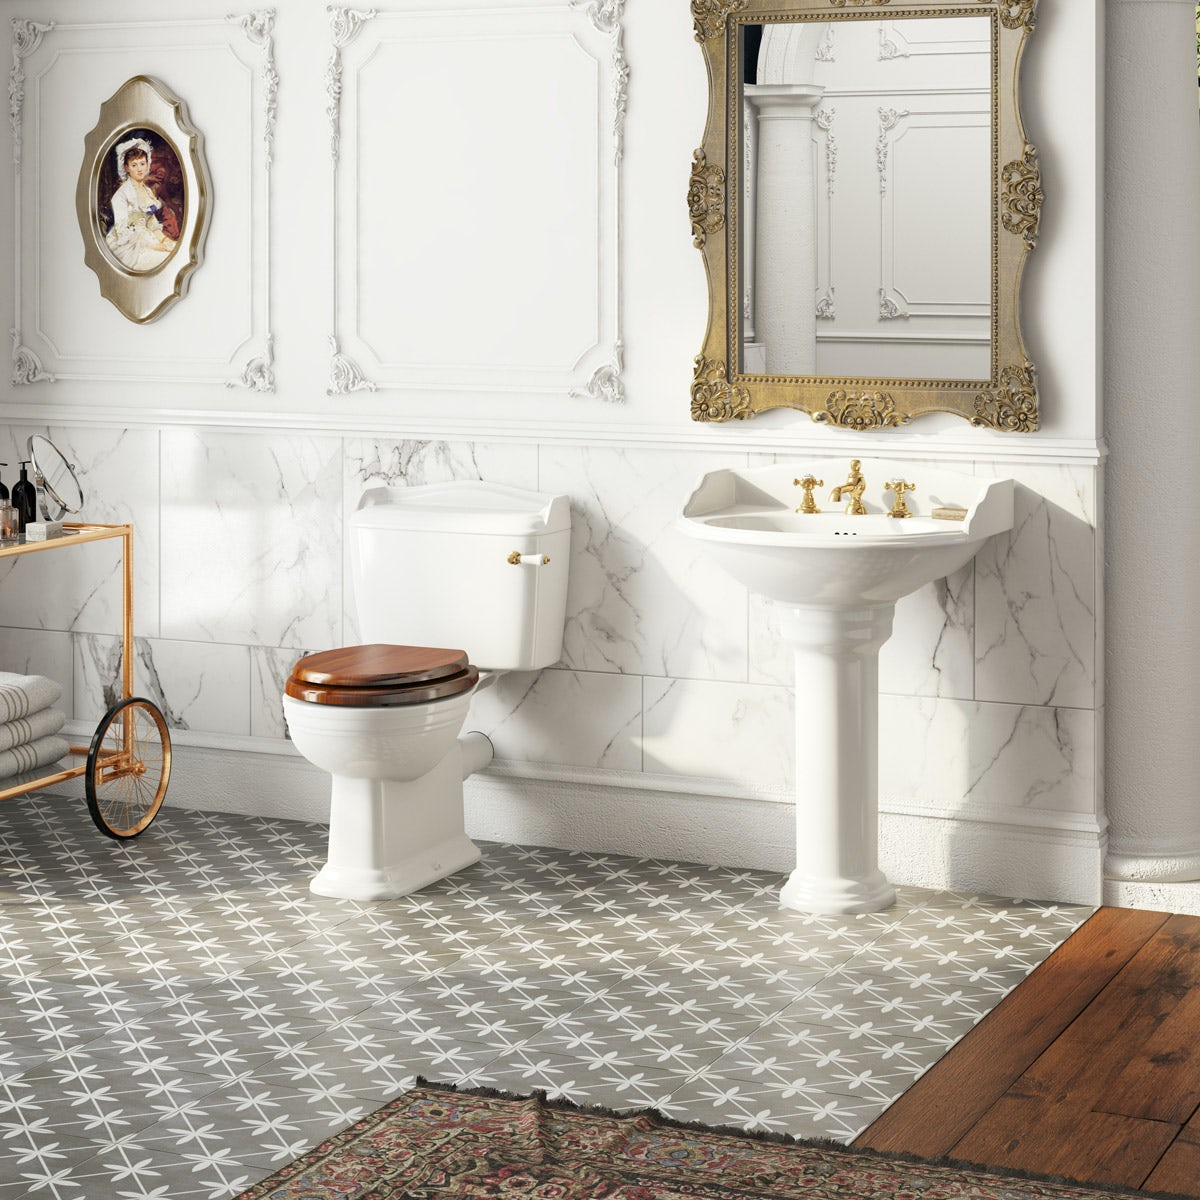 Belle de Louvain Bellini close coupled toilet and full pedestal suite with incalux fittings and taps